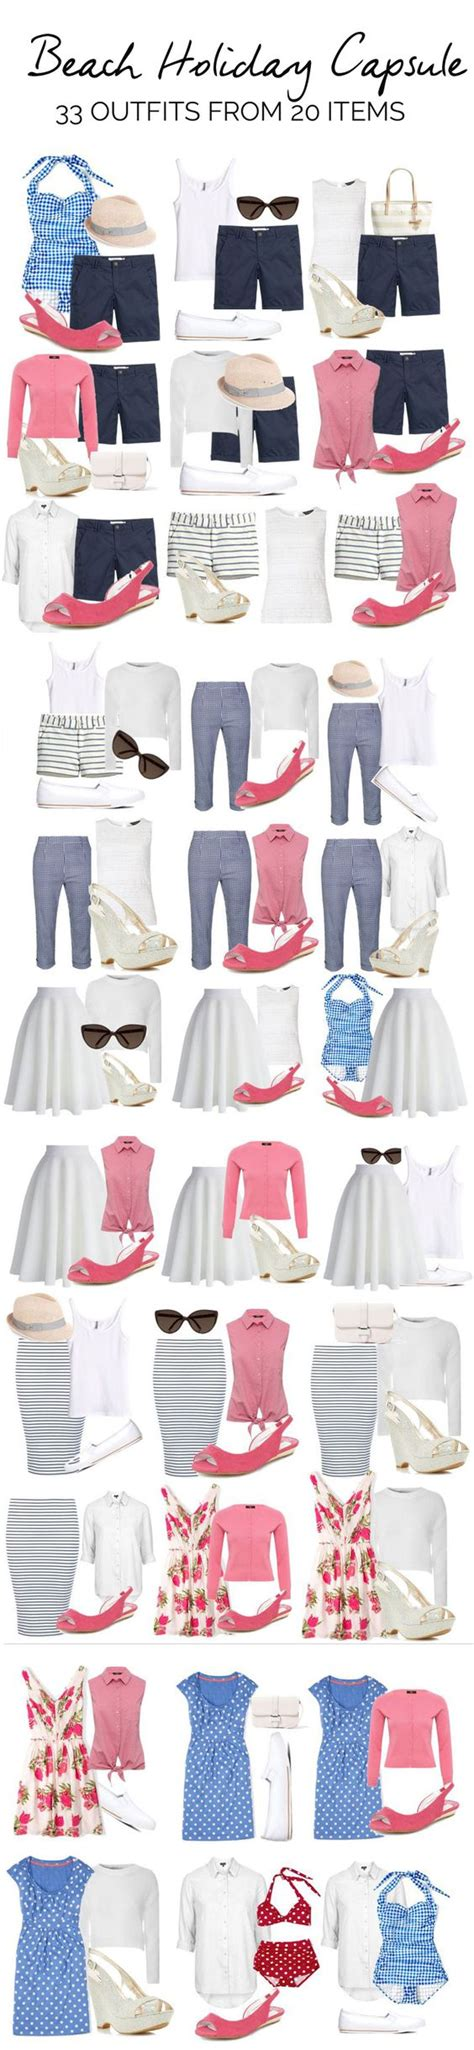 wardrobe oxygen what to pack for vacation what to pack beach vacations and capsule wardrobe on